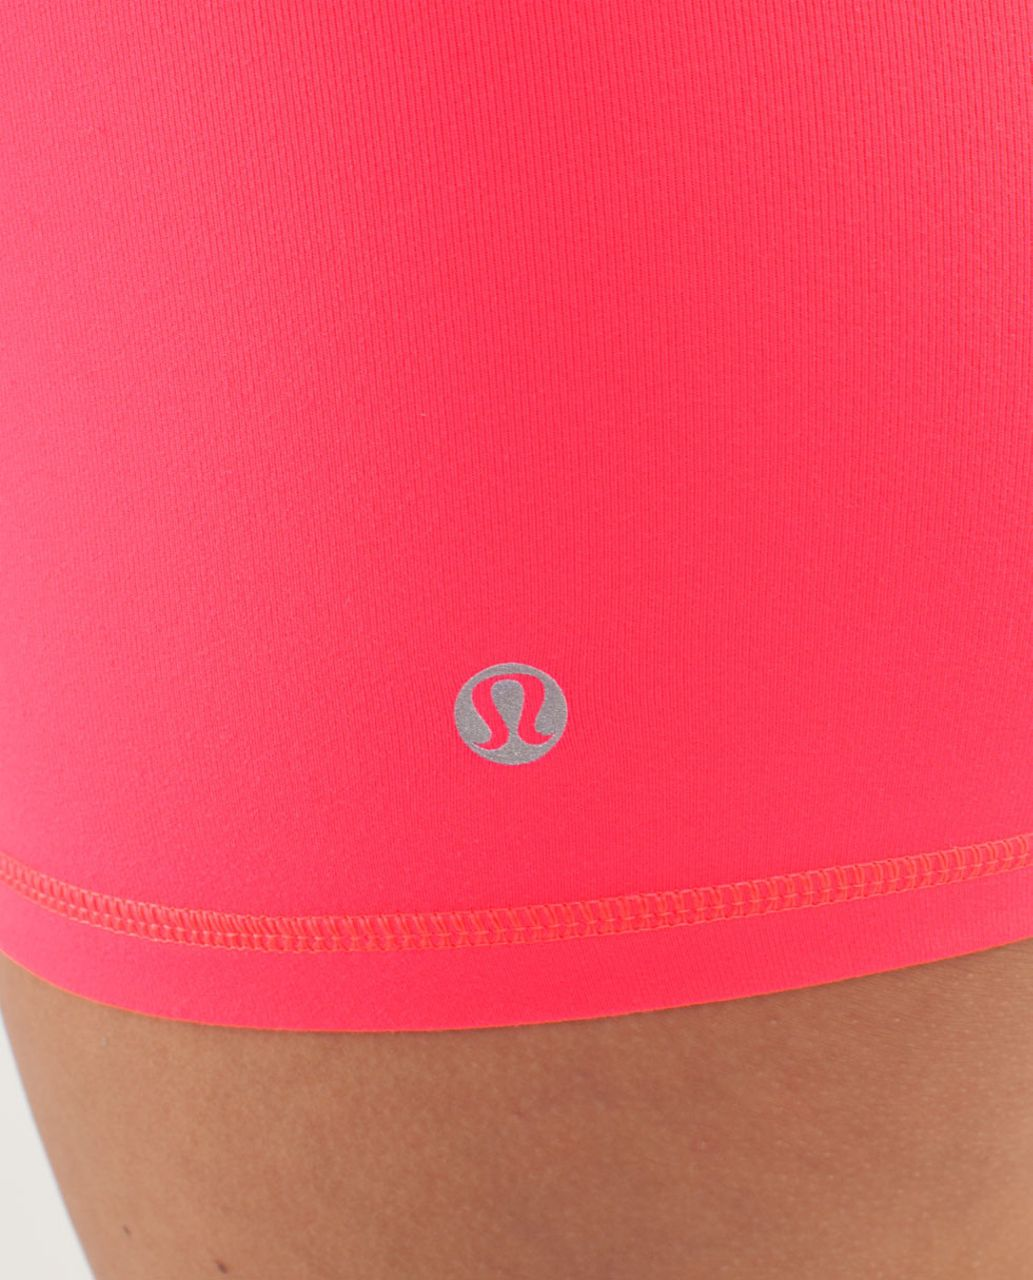 Lululemon Boogie Short - Flash /  Black